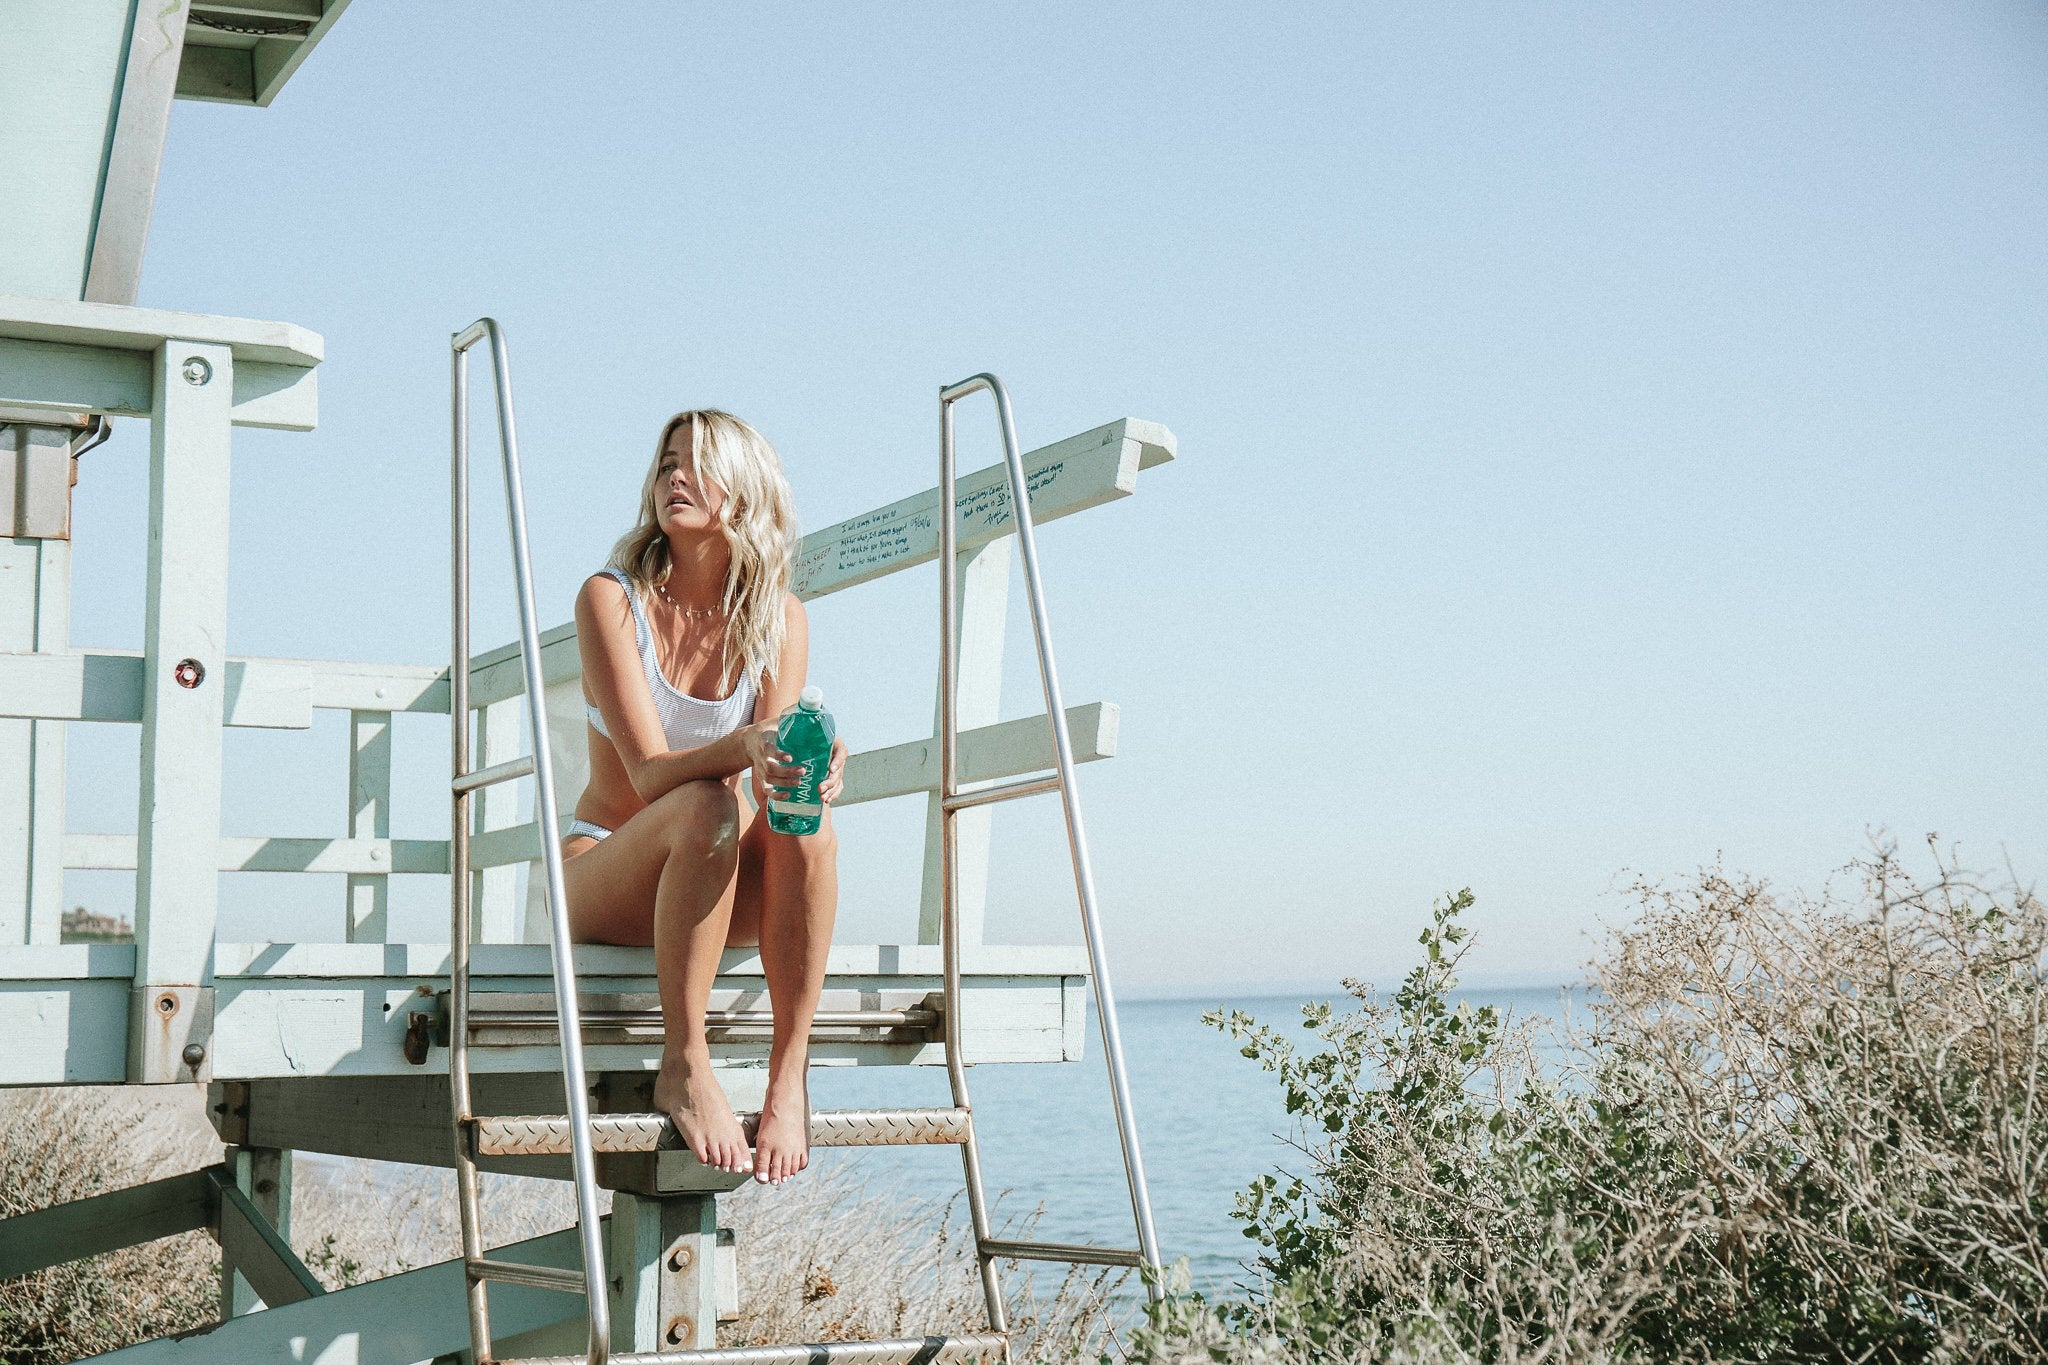 A woman in a bathing suit sitting on a lifeguard tower